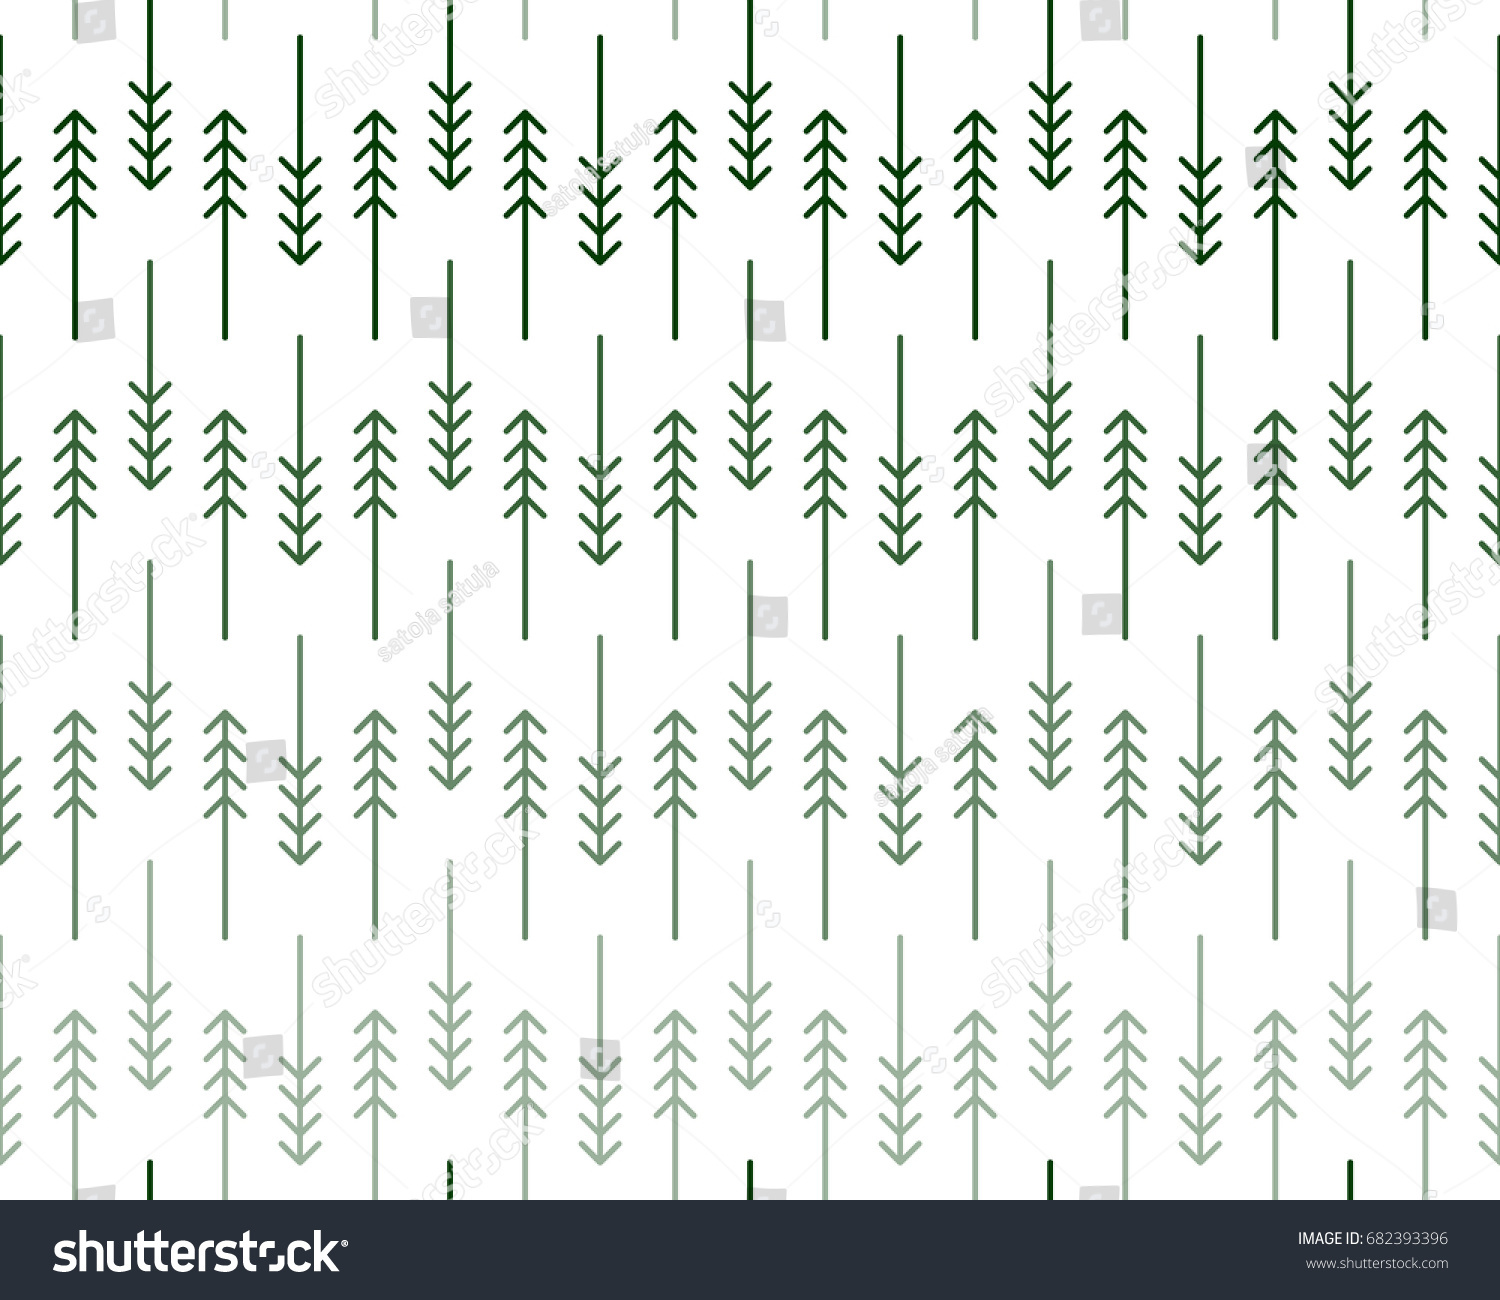 Seamless fir tree scandinavian pattern textile background wrapping - Scandinavian Geometric Pattern With Stylized Linear Fir And Pine Trees In Shades Of Green On White